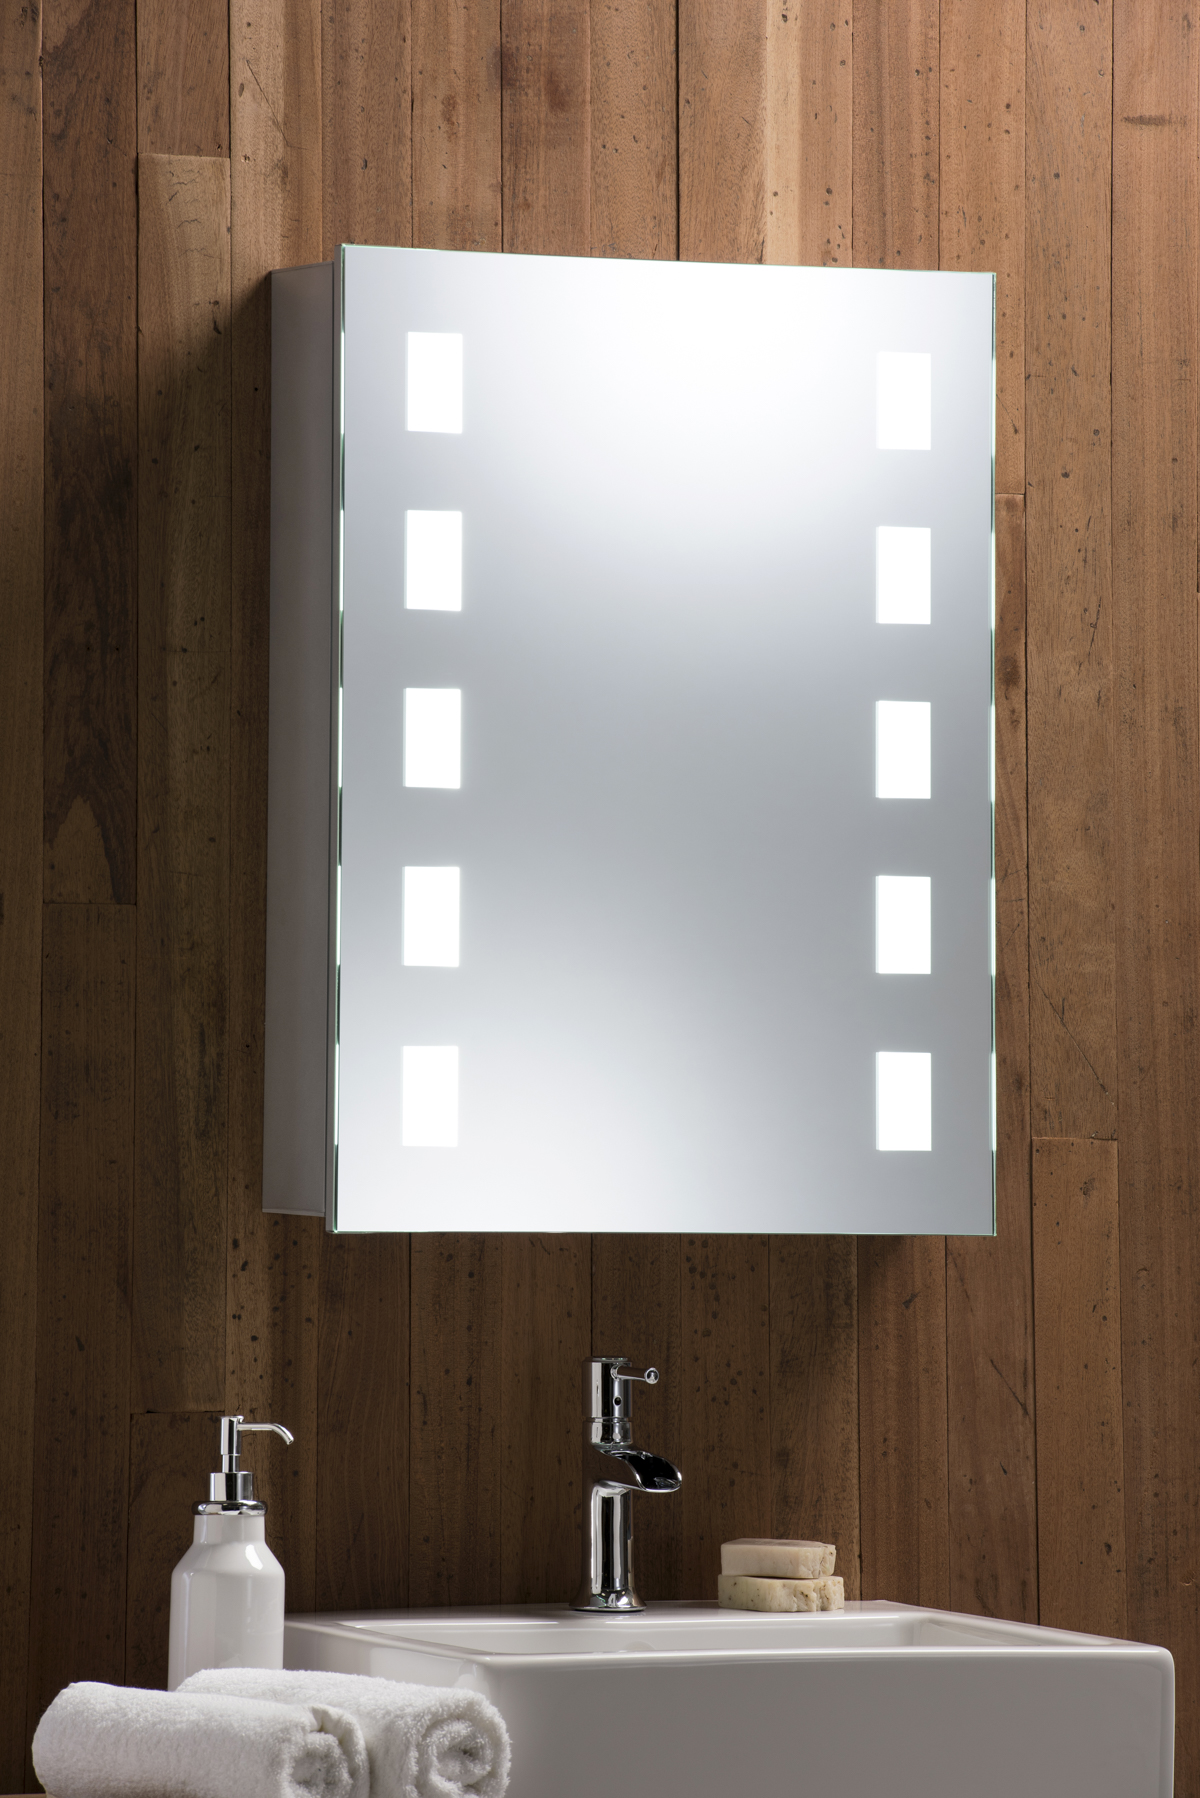 Led illuminated bathroom mirrored cabinet with demister shaver sensor 70x50 c10 ebay Neue design bathroom mirror